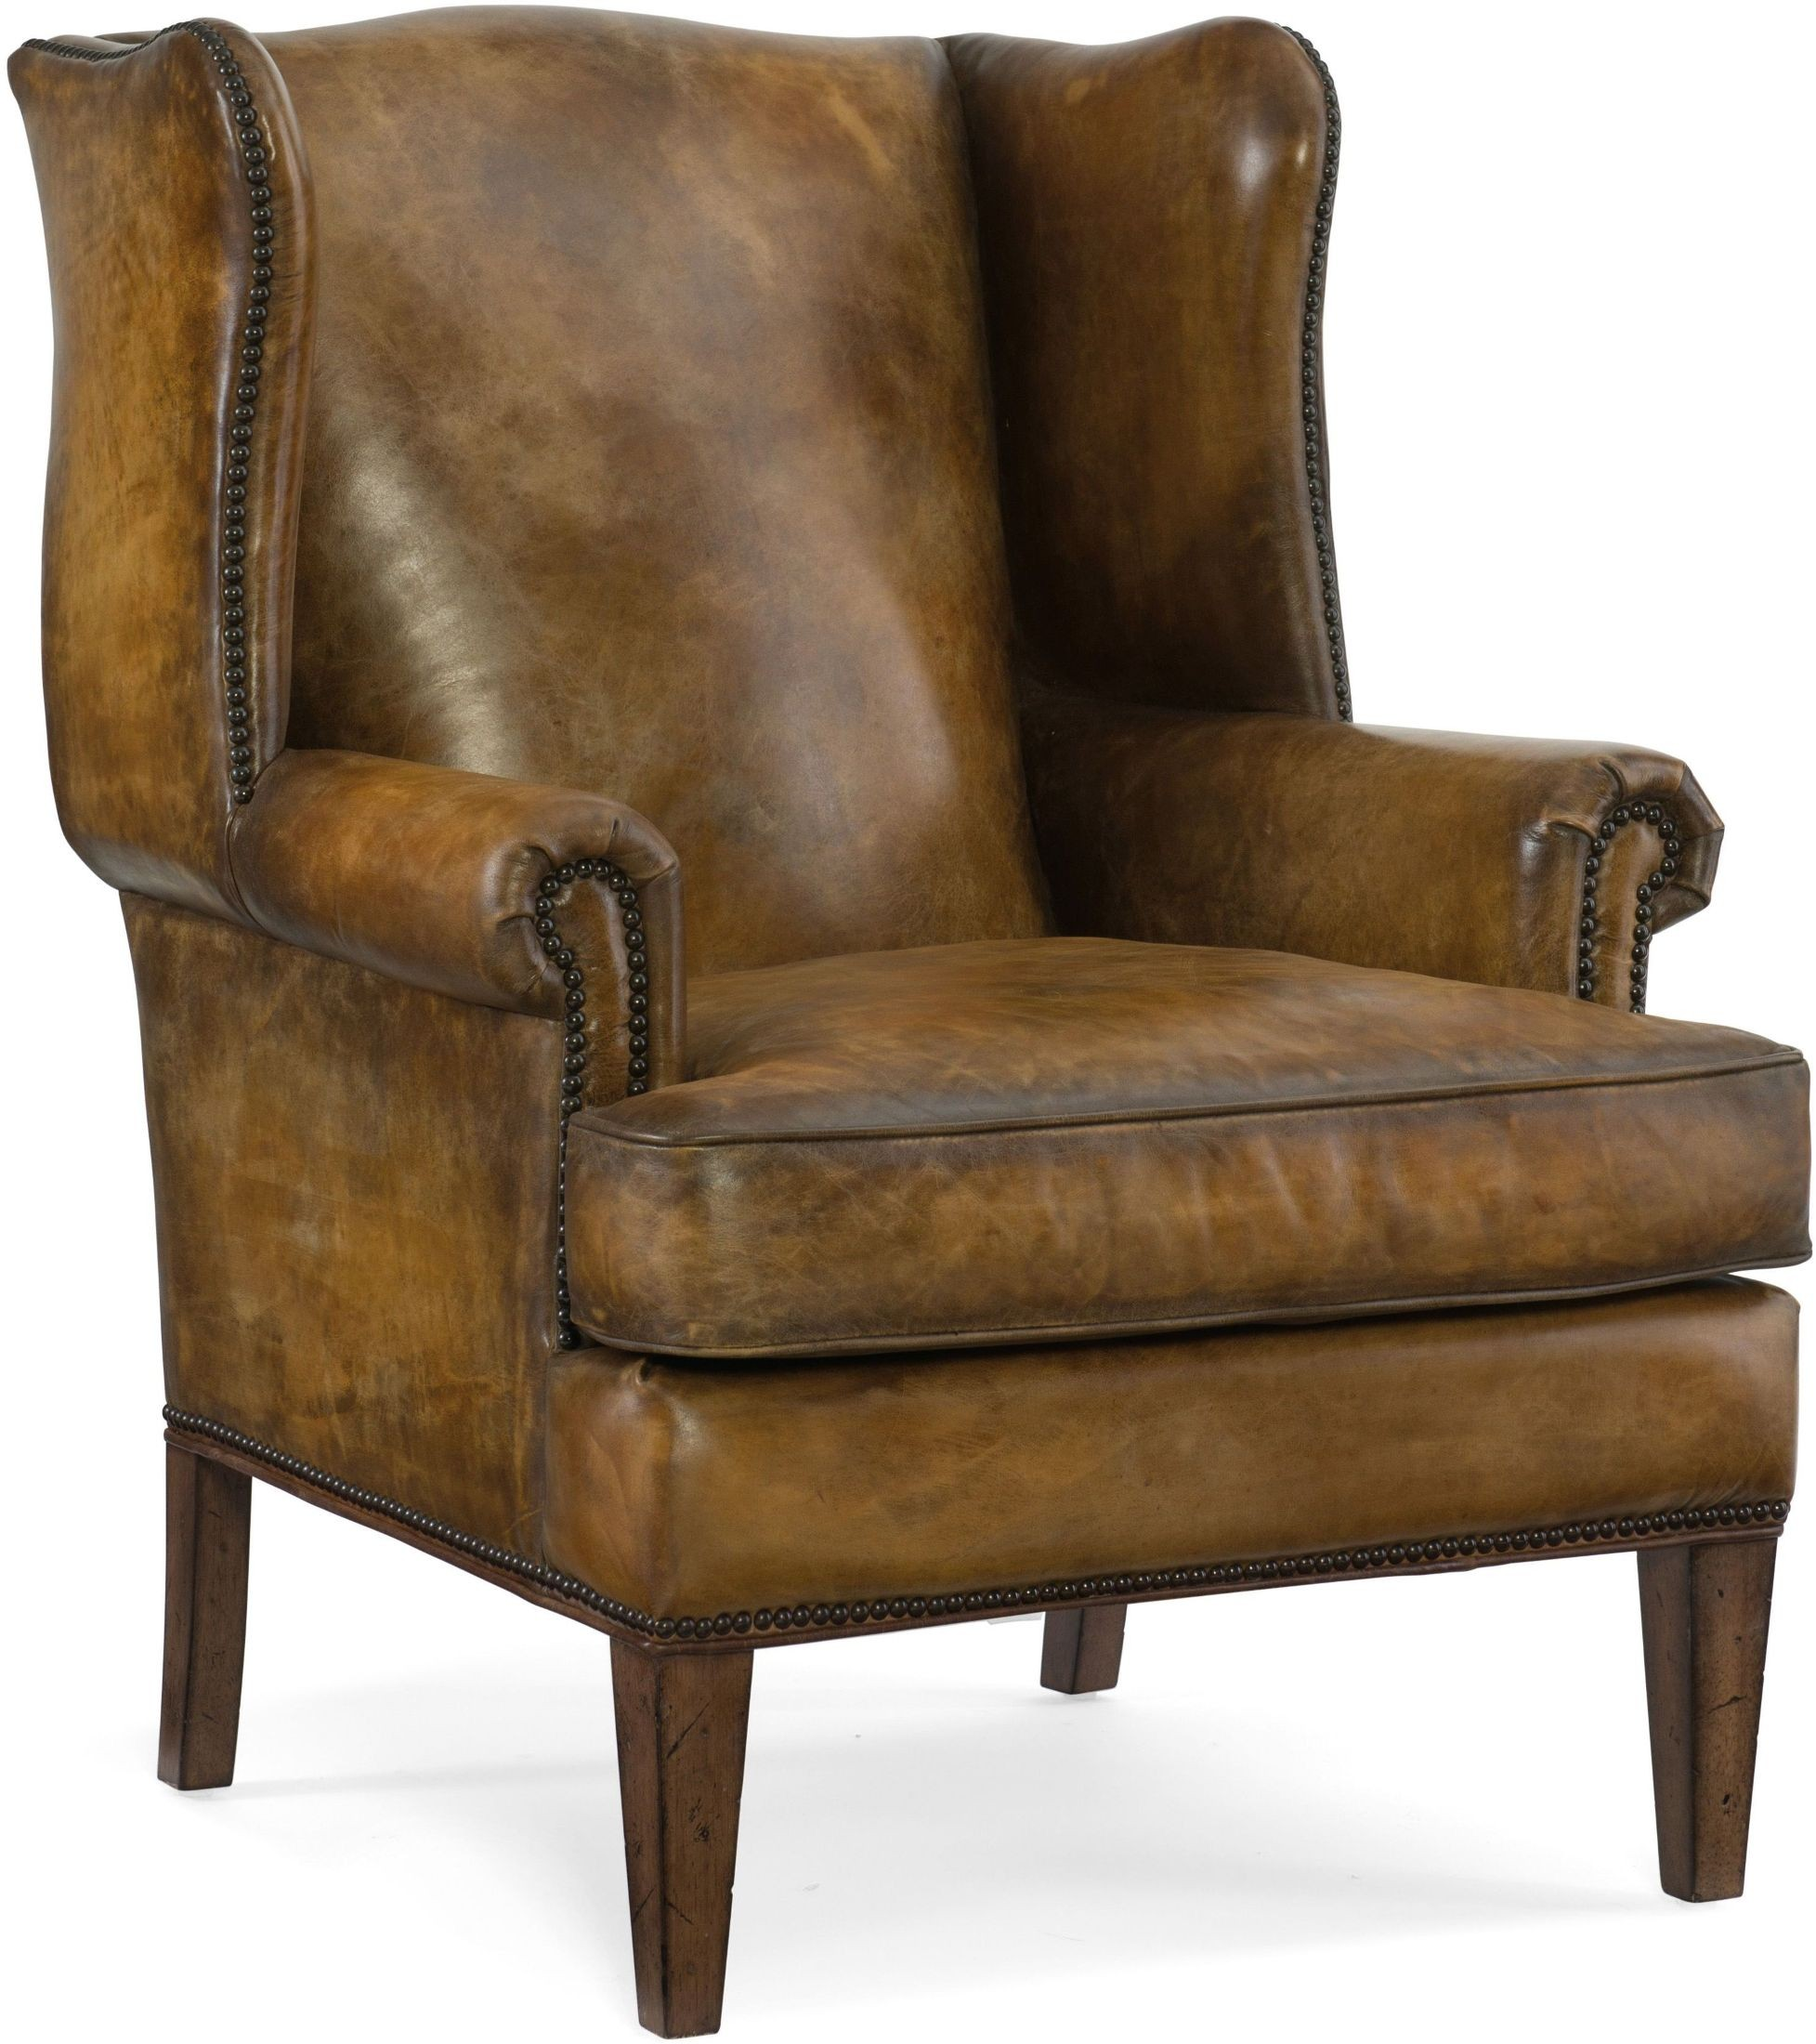 Blakeley Brown Leather Club Chair from Hooker | Coleman ...